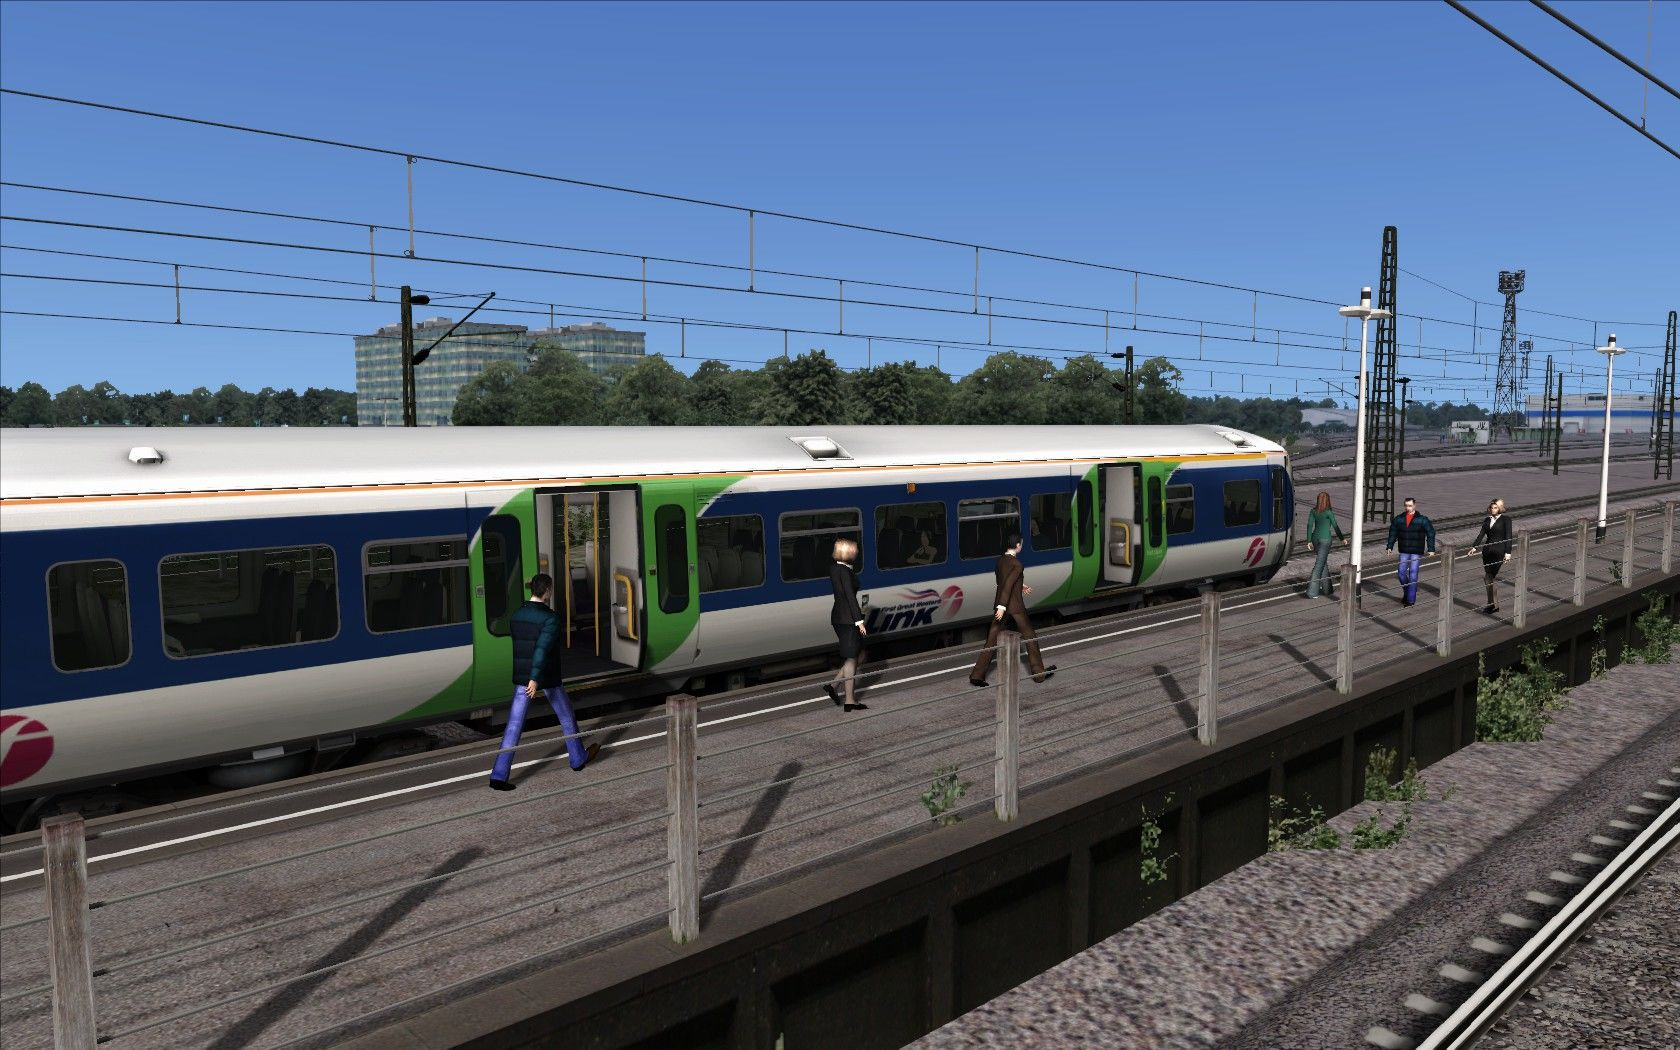 Railworks 3 Train Simulator 2012 Deluxe PC Game Iso Full Version